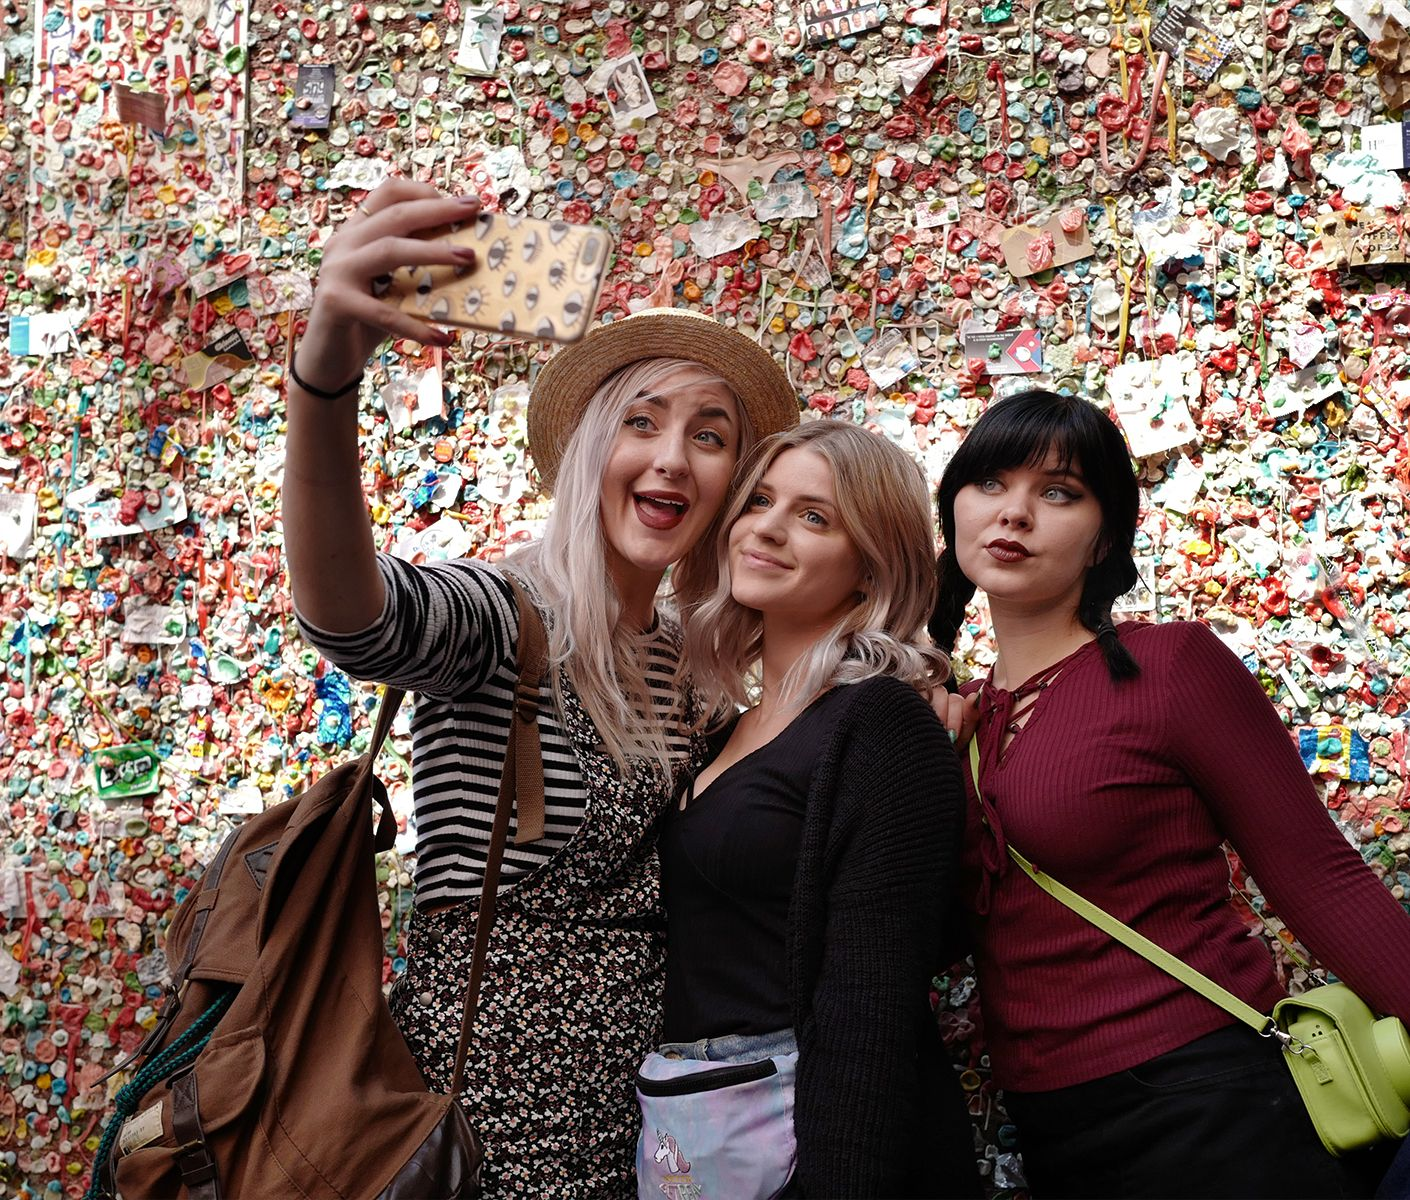 Selfie girls at the gum wall, Seattle